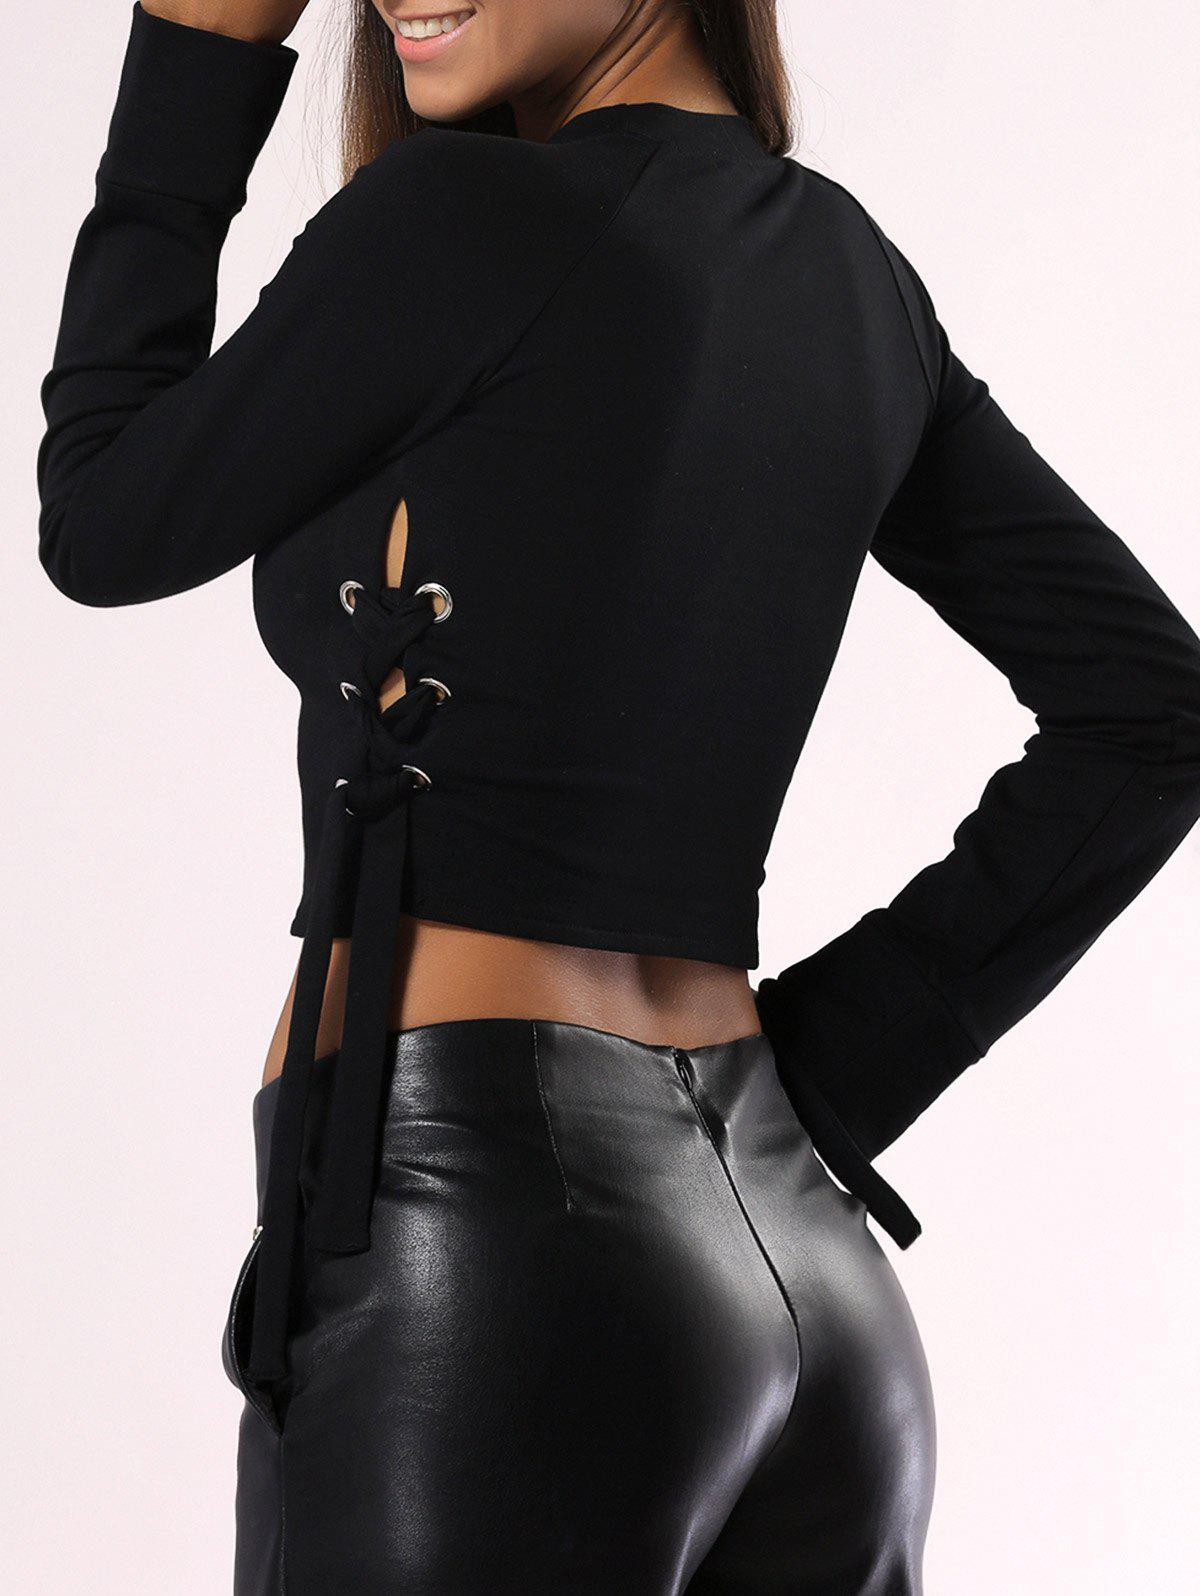 Solid Color Lace-Up Long Sleeve Crop Top - BLACK M